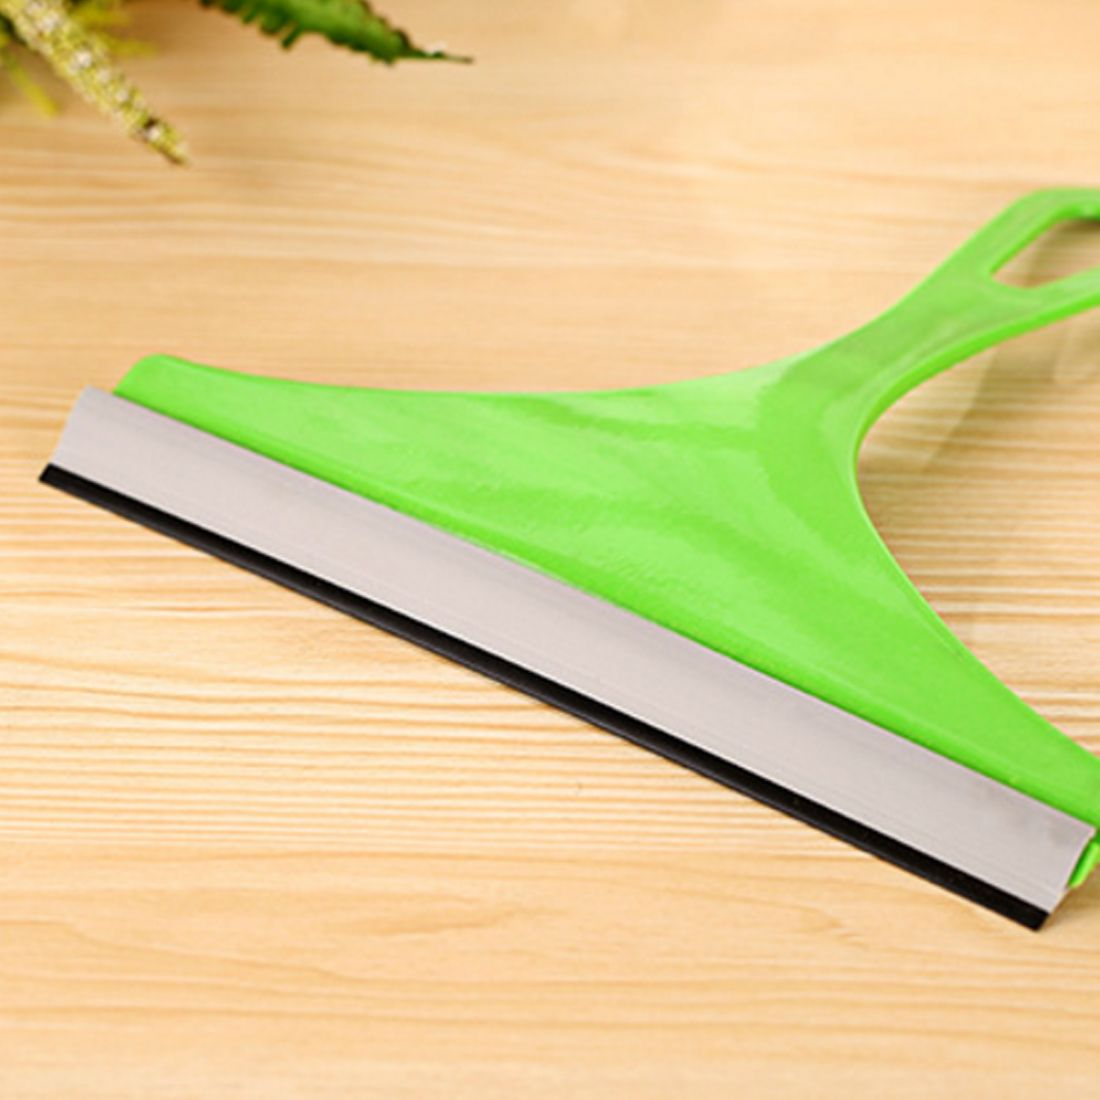 AUTO Water Wiper Soap Scraper Cleaner Blade Squeegee Car Vehicle Window Cleaning